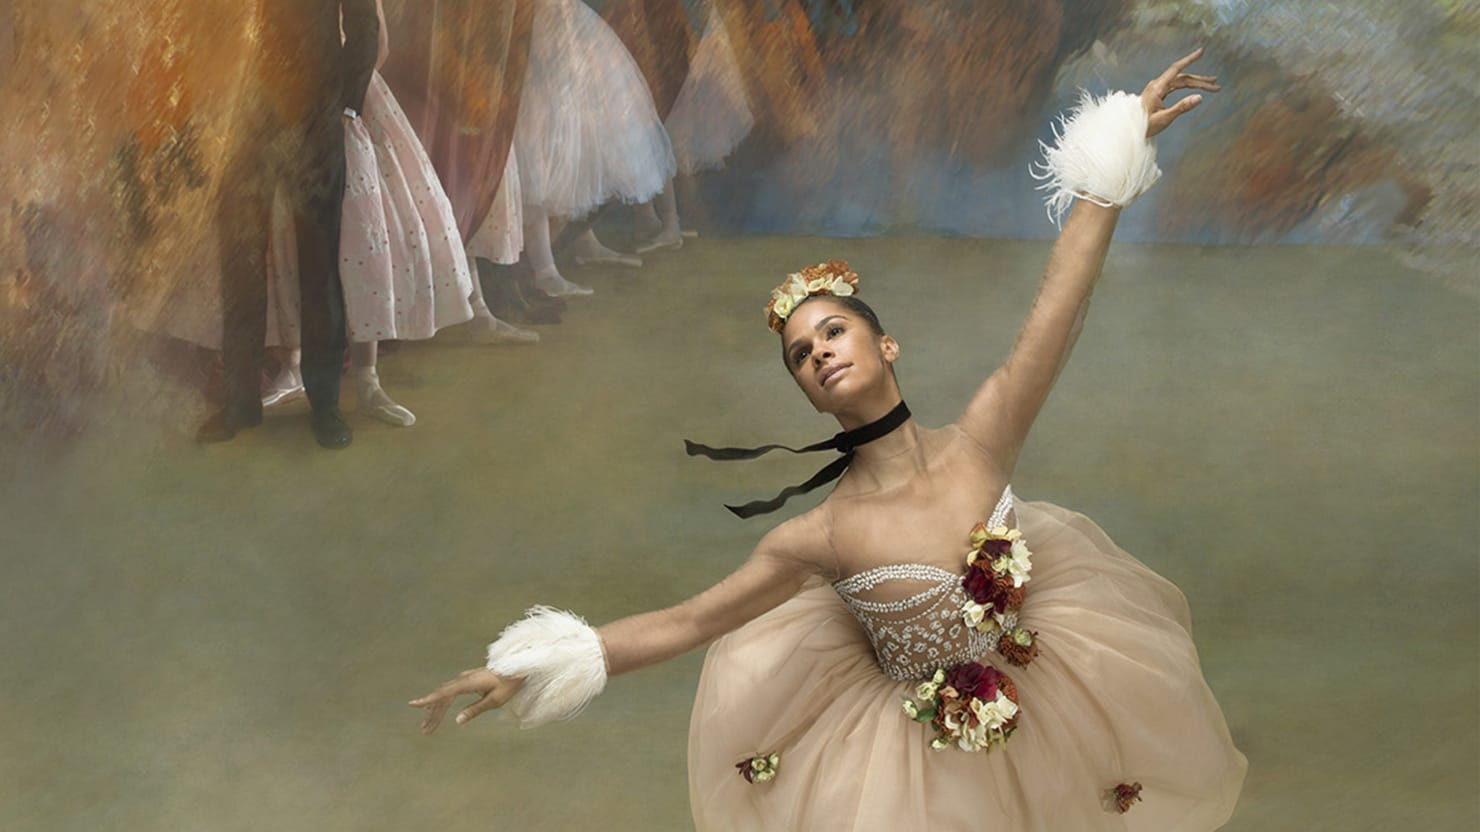 Misty Copeland Re-creates Iconic Degas Paintings